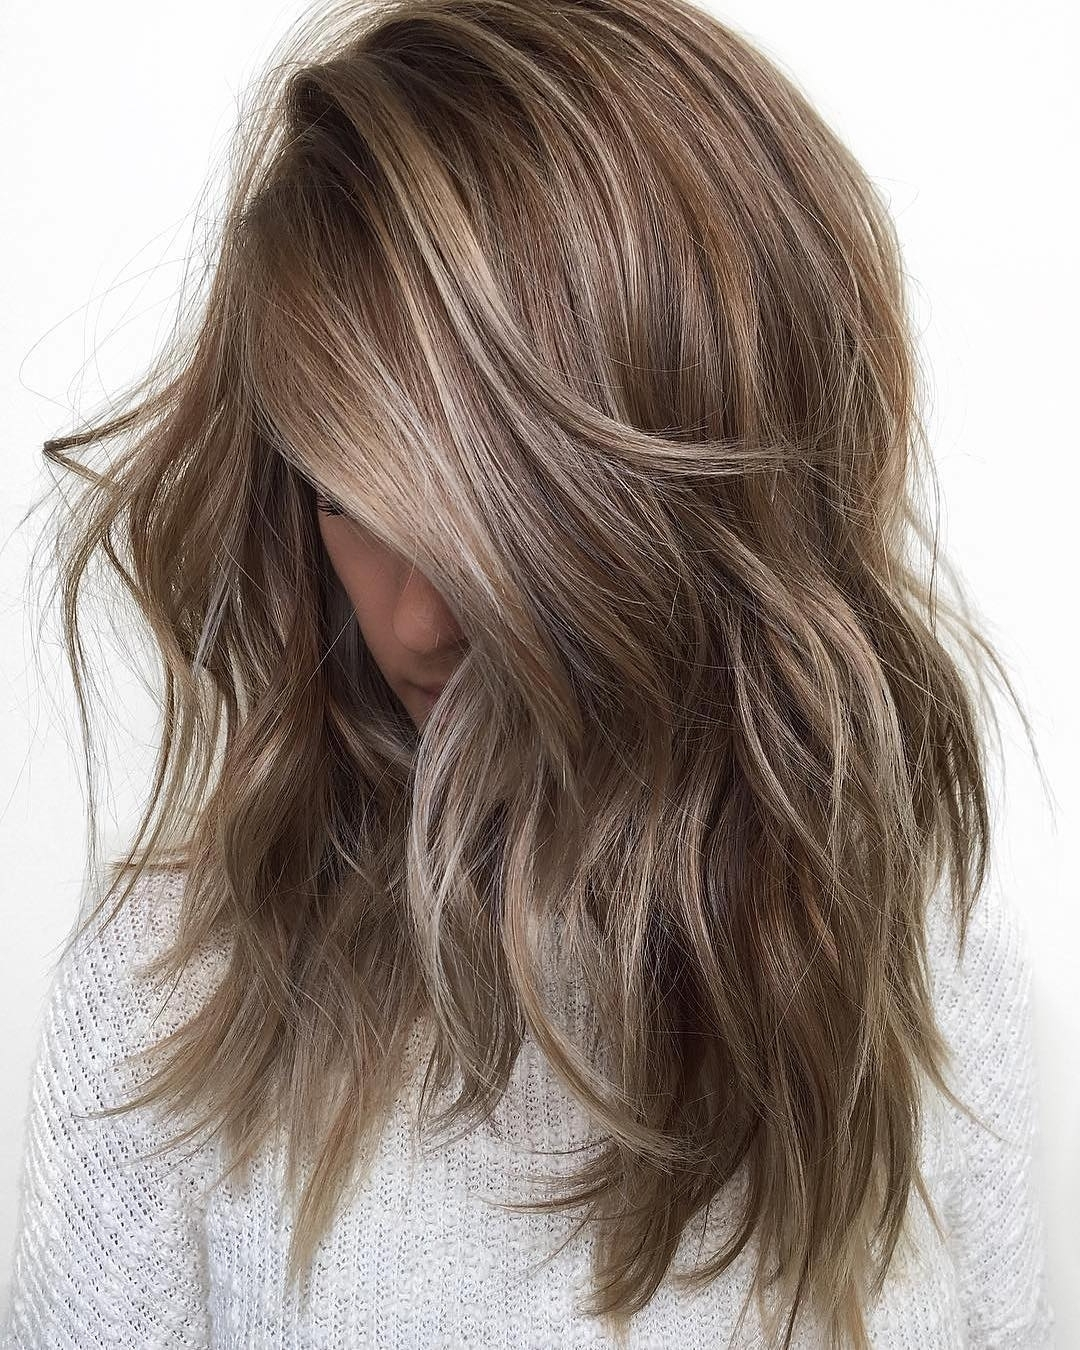 Best And Newest Shoulder Length Ombre Blonde Hairstyles For 10 Balayage Ombre Hair Styles For Shoulder Length Hair, Women (View 3 of 20)